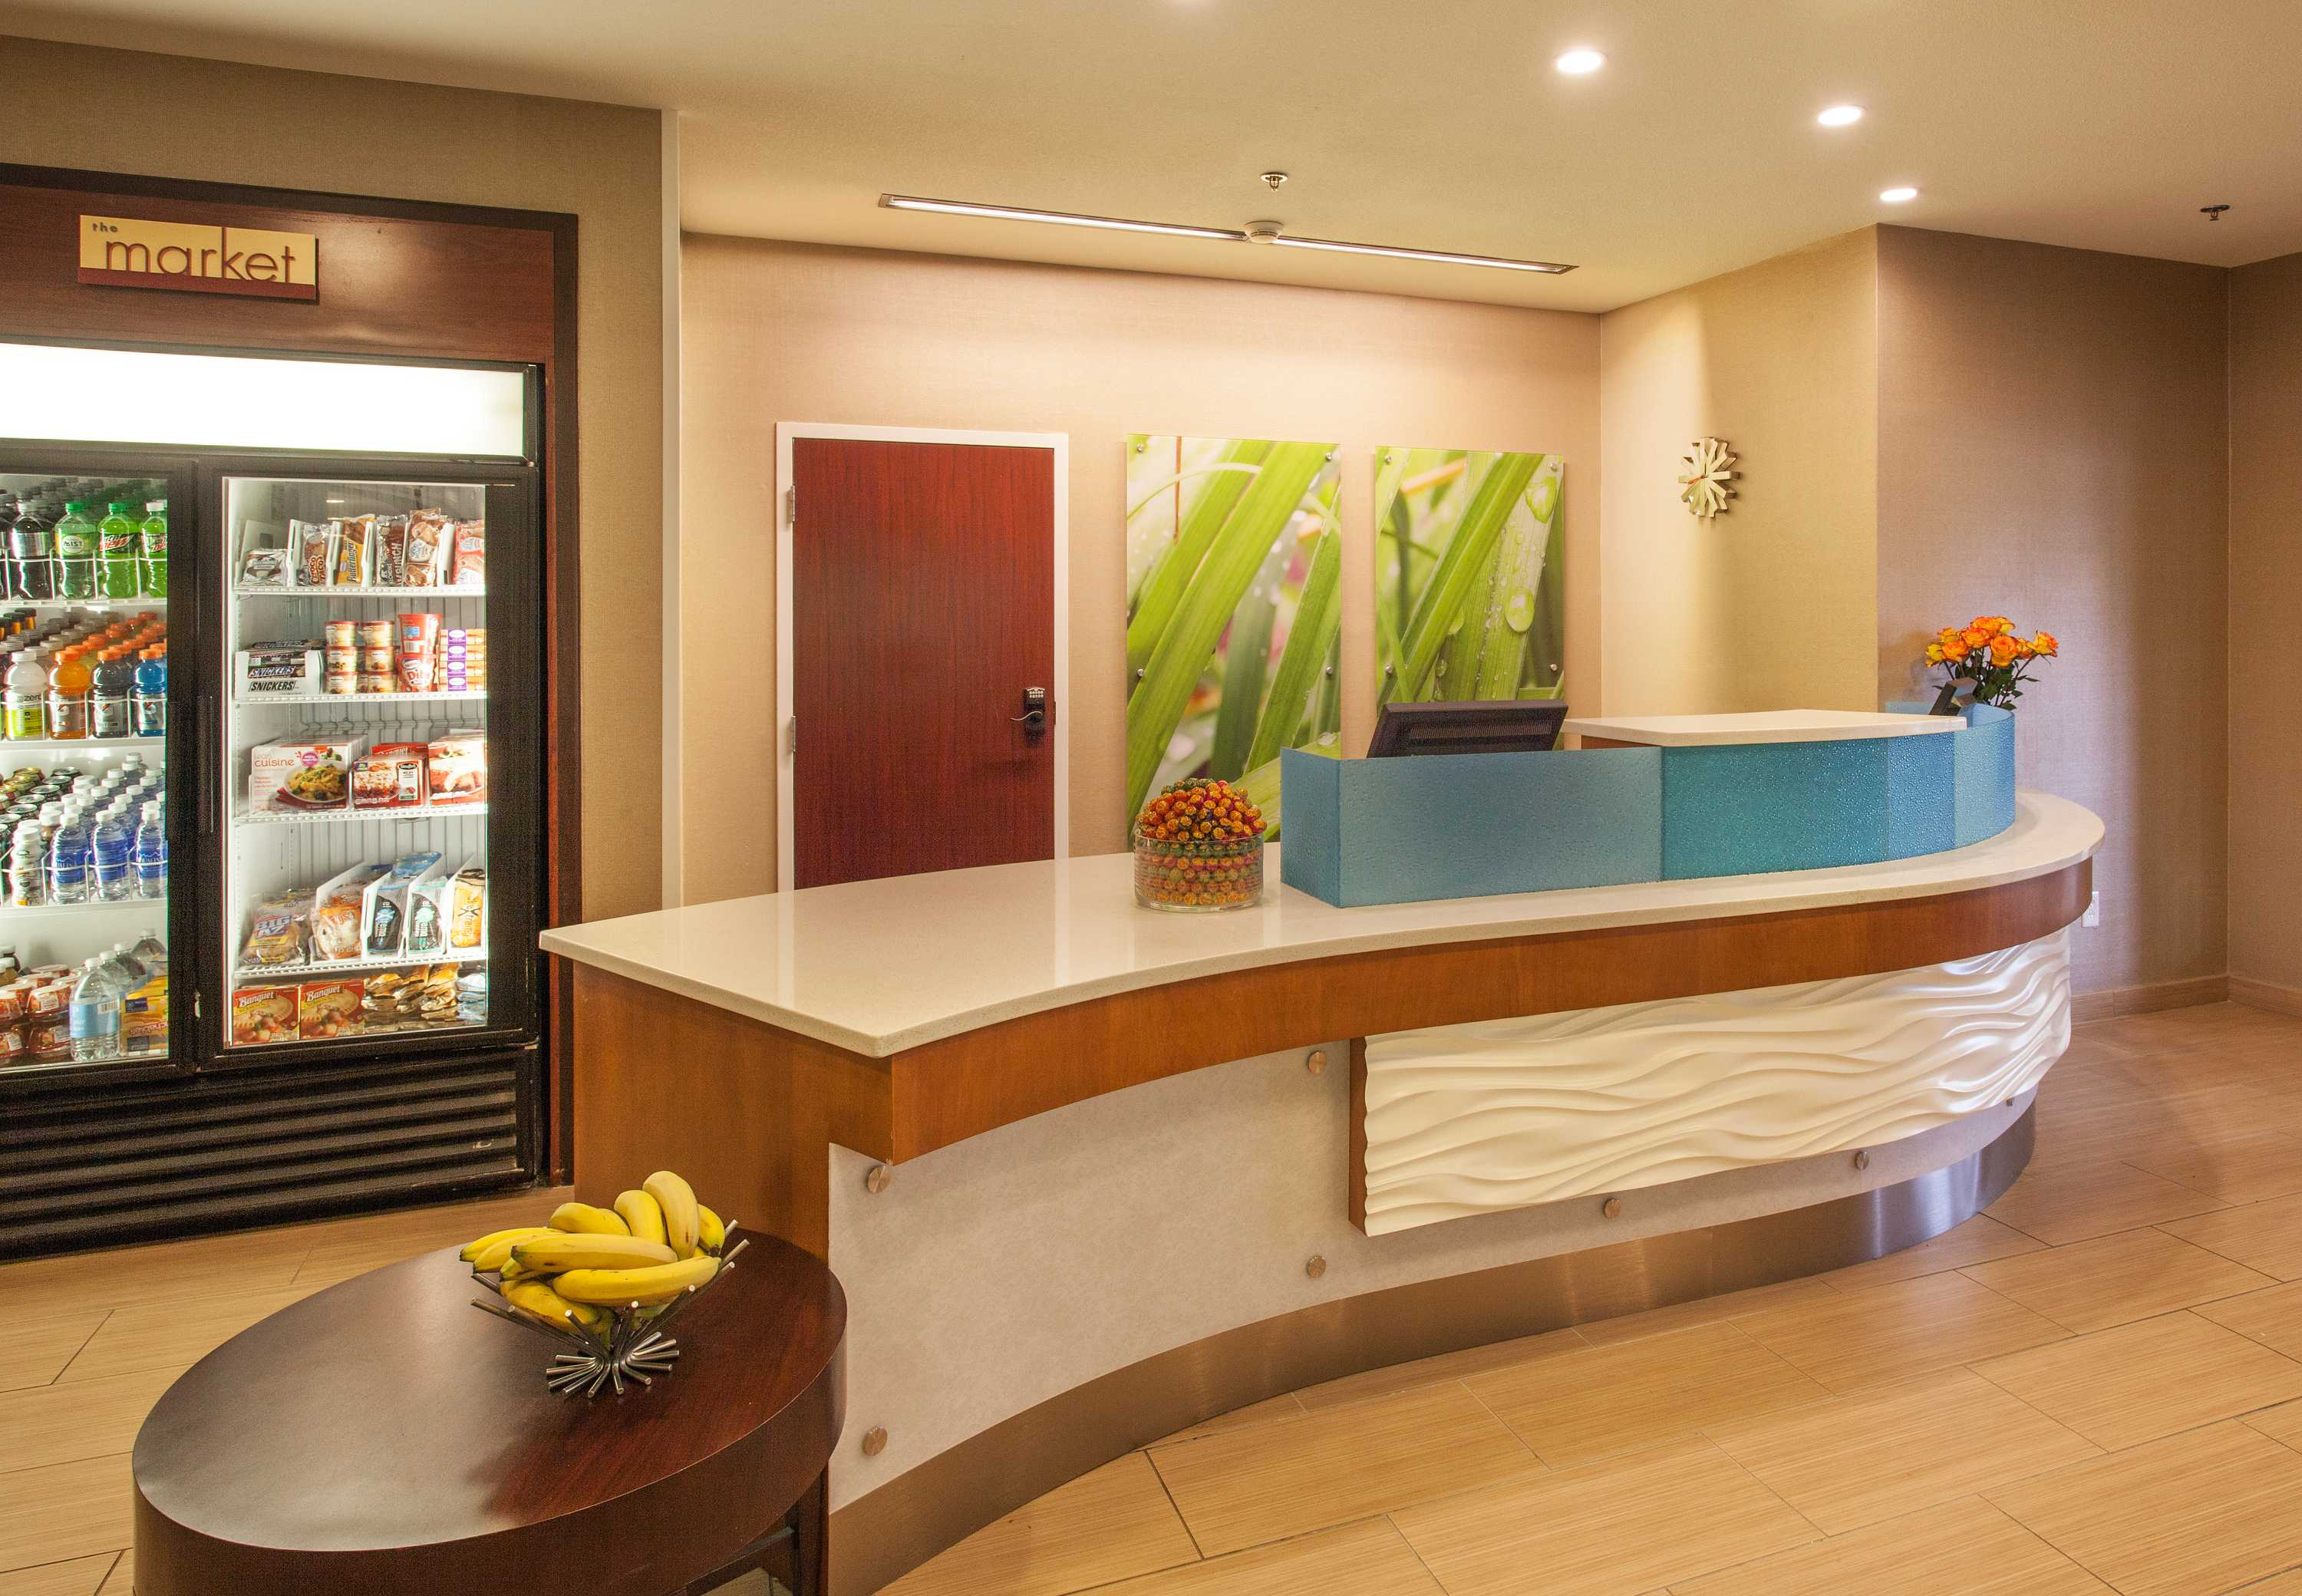 SpringHill Suites by Marriott Phoenix Tempe/Airport image 9